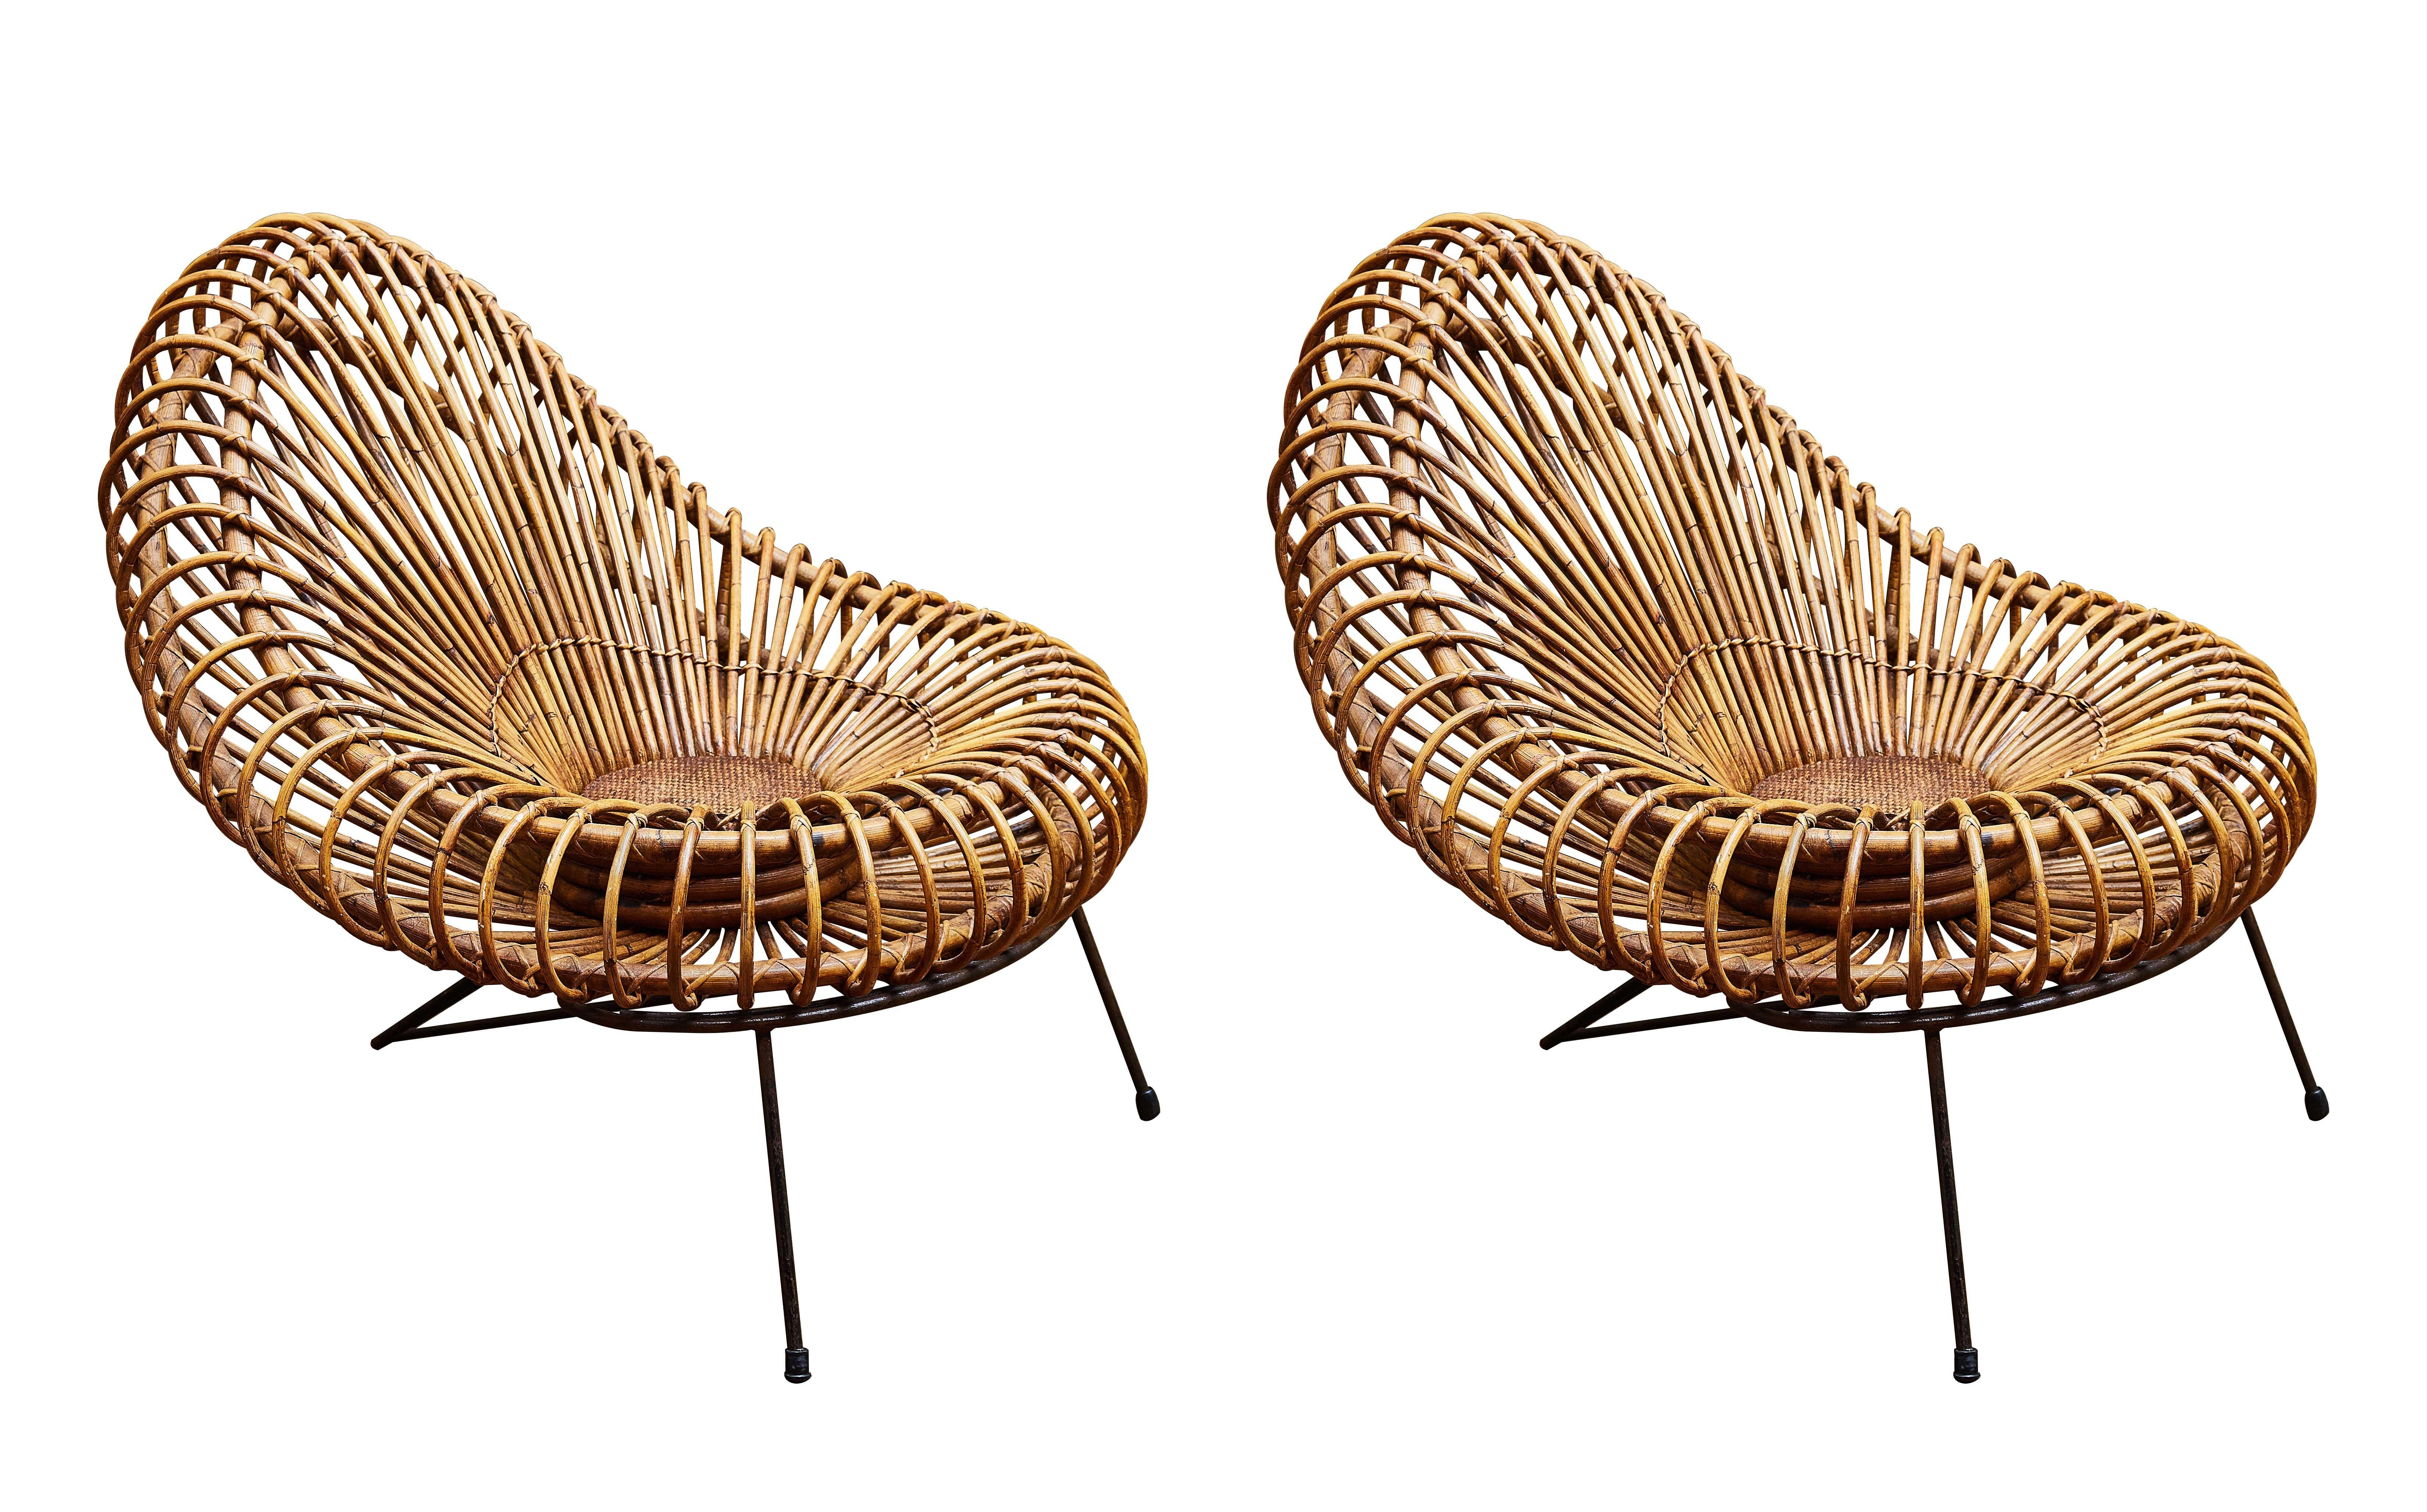 Pair Of Vintage Rattan Chairs By Janine Abraham For Sale At 1stdibs